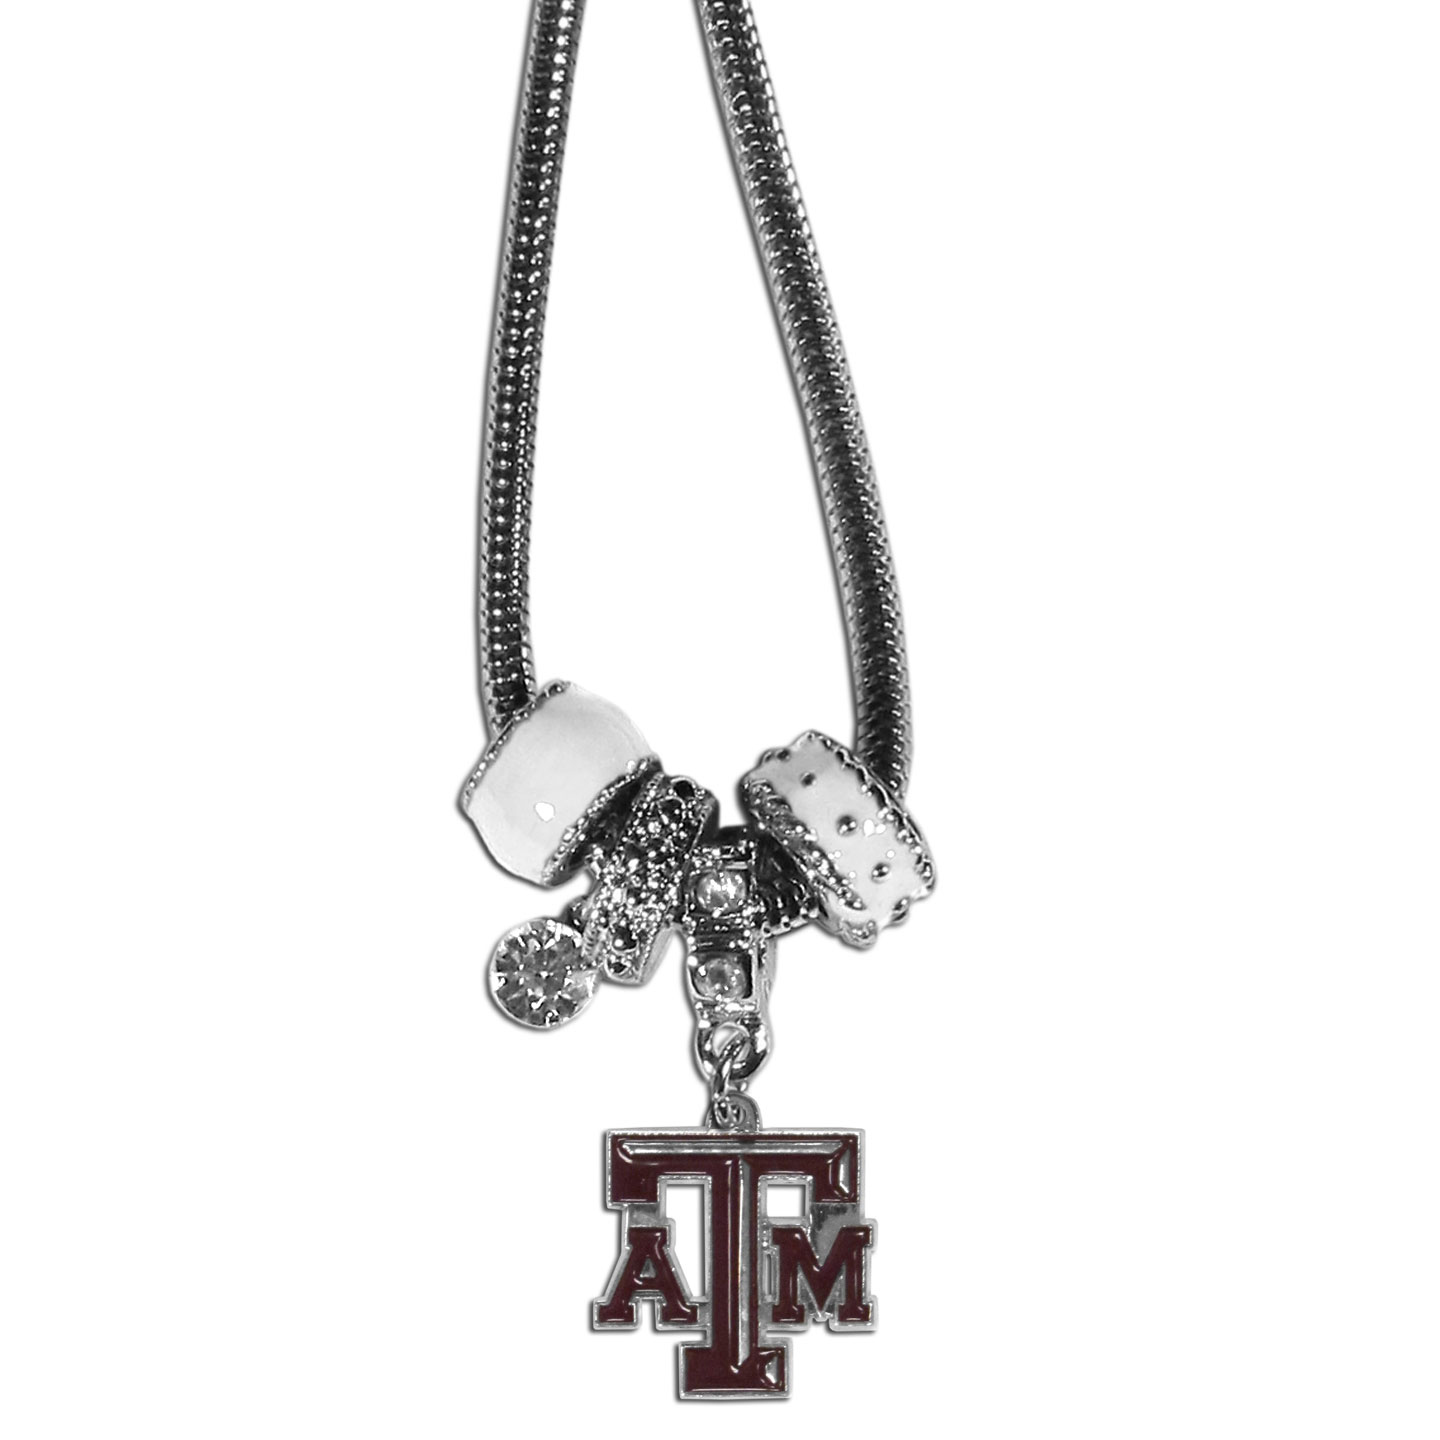 Texas AandM Aggies Euro Bead Necklace - We have combined the wildly popular Euro style beads with your favorite team to create our Texas A&M Aggies bead necklace. The 18 inch snake chain features 4 Euro beads with enameled team colors and rhinestone accents with a high polish, nickel free charm and rhinestone charm. Perfect way to show off your team pride. Thank you for shopping with CrazedOutSports.com